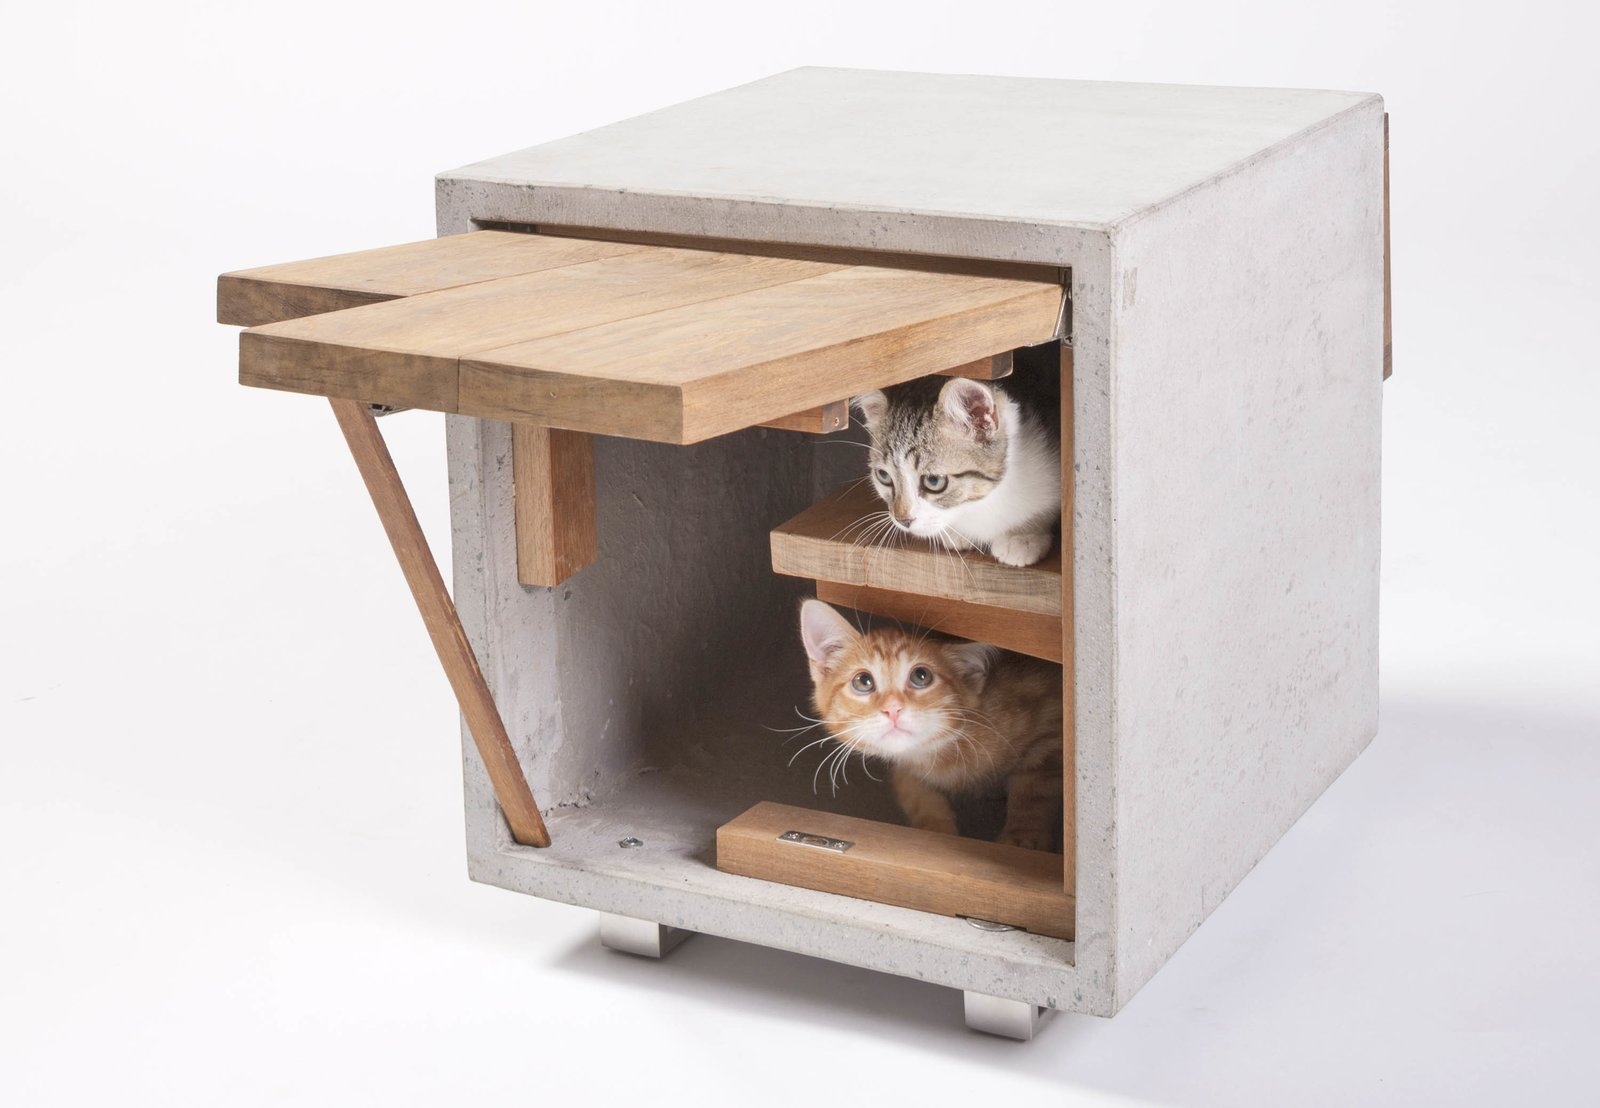 The Cat Cube by Standard Architecture | Design of Los Angeles has two openings and is made with reclaimed wood and concrete. The concrete heats up during the day to provide strays with a source of warmth at night.  Photo 21 of 21 in 21 Cats Living in the Modern World from Cats–At Home in the Meow-dern World